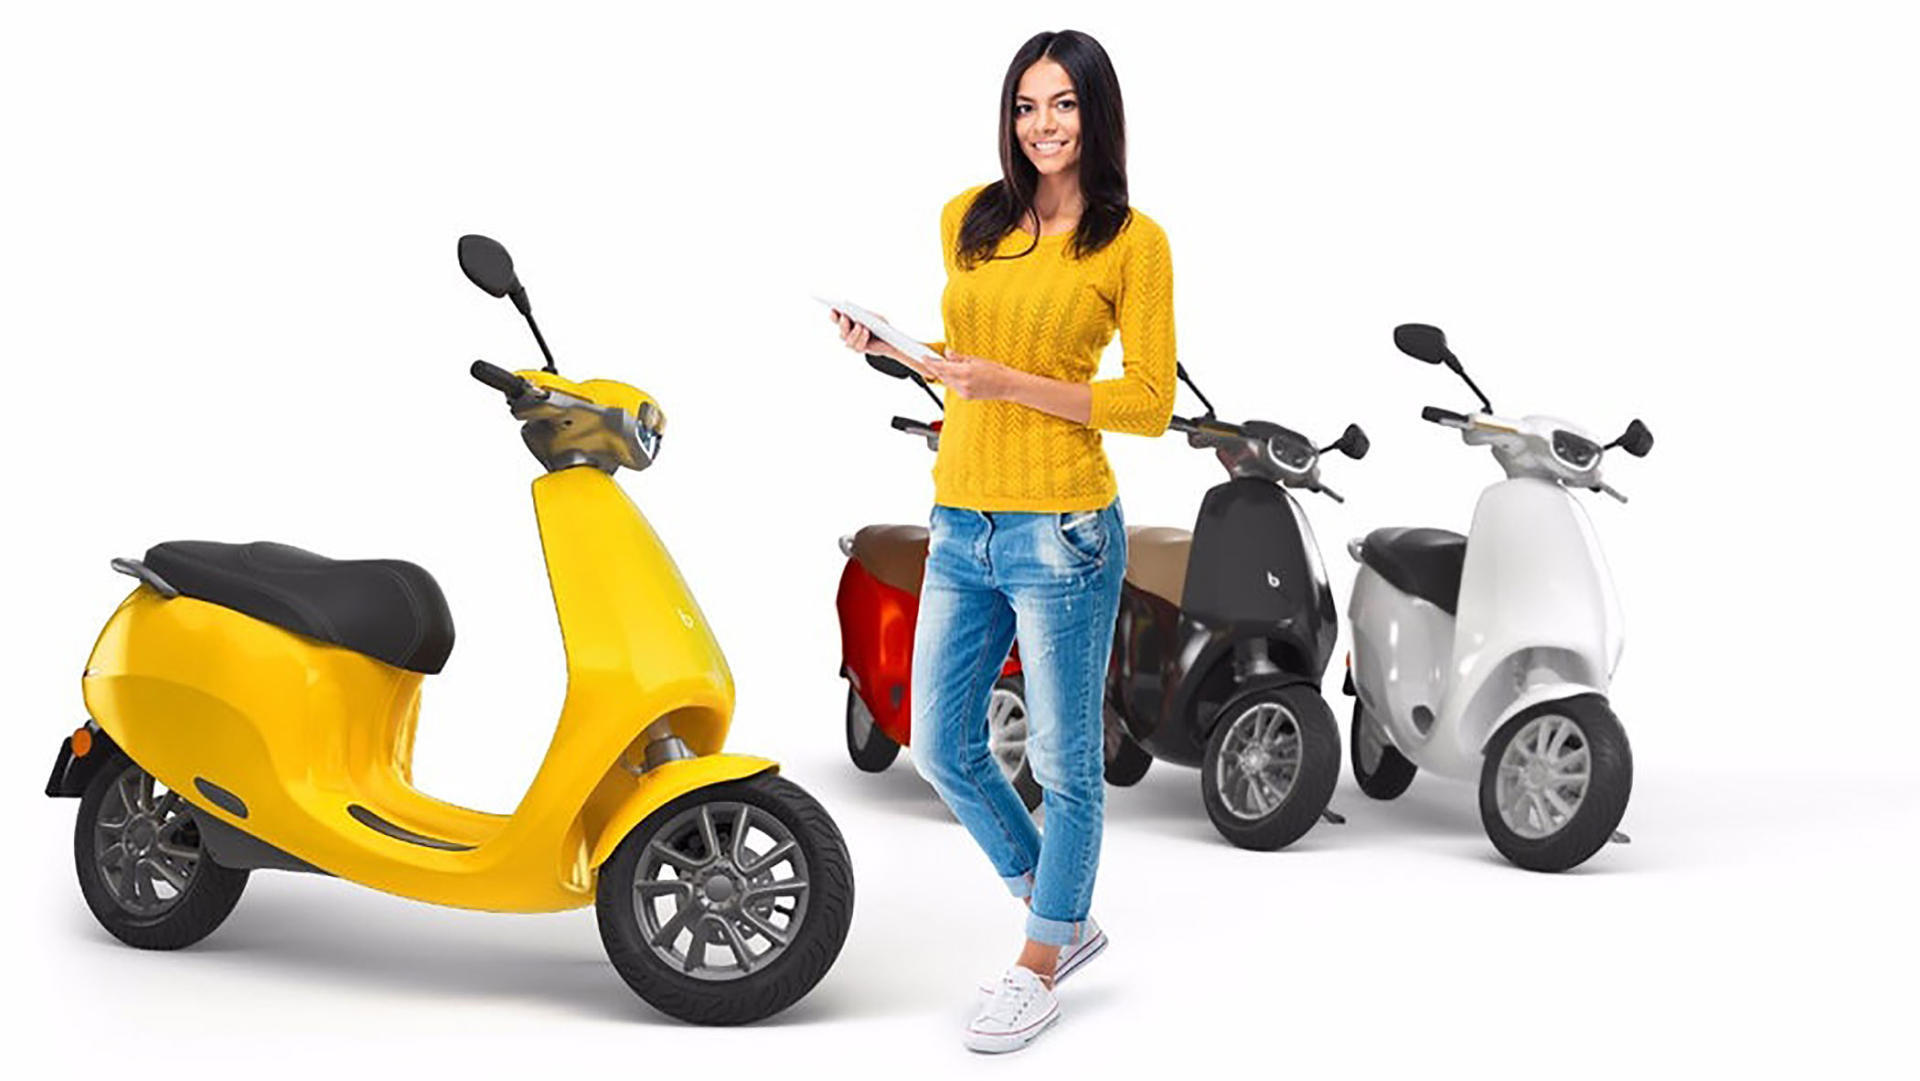 Etergo AppScooter – 🛵 Electric Moped Scooter 2019